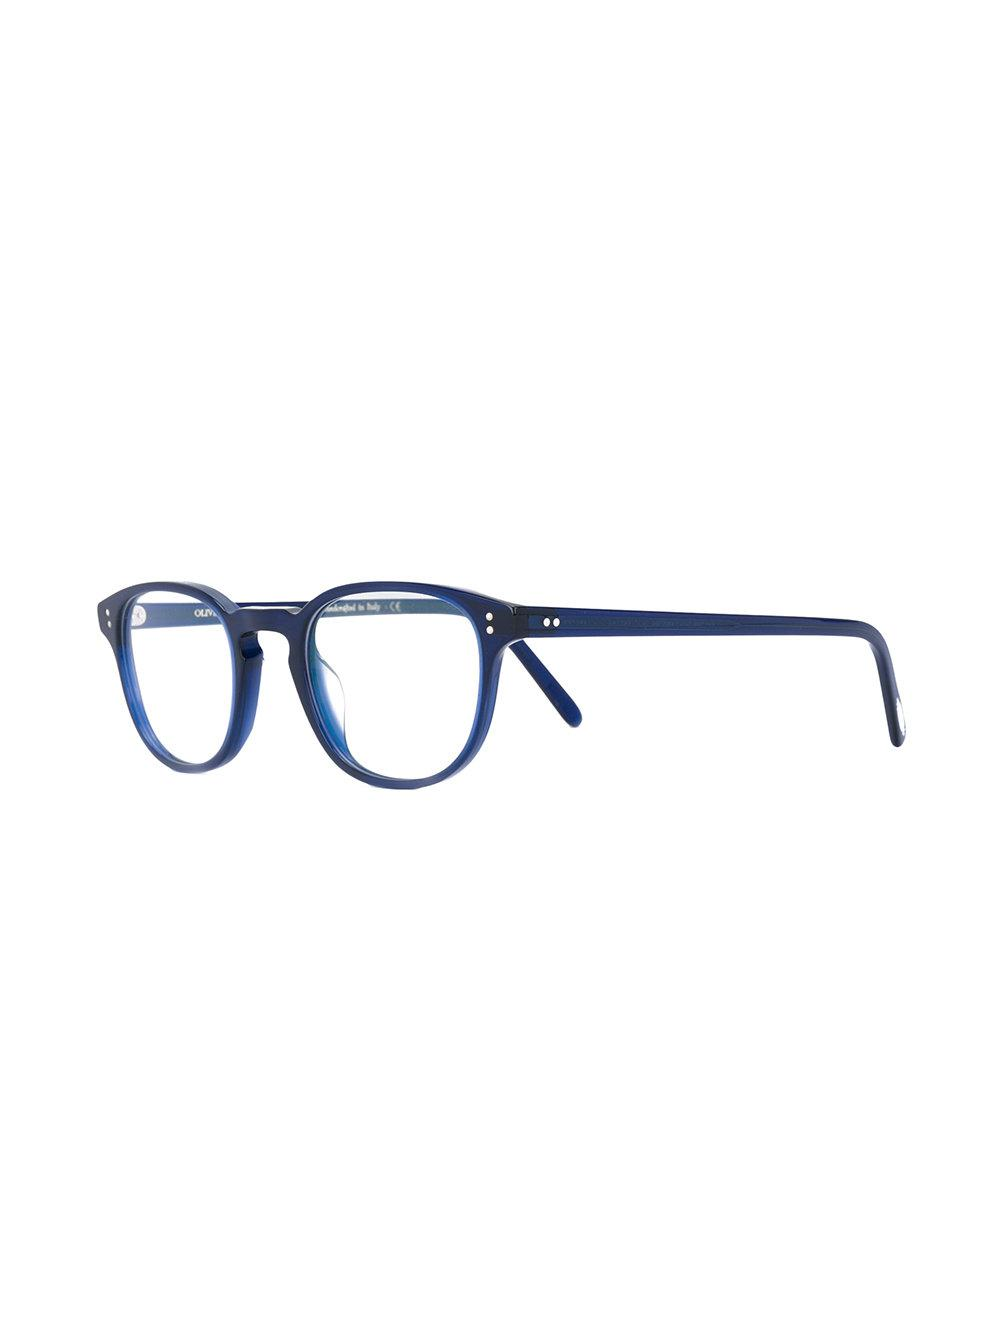 67b68f2fba9 Oliver Peoples - Blue  fairmont  Square Frame Glasses - Lyst. View  fullscreen